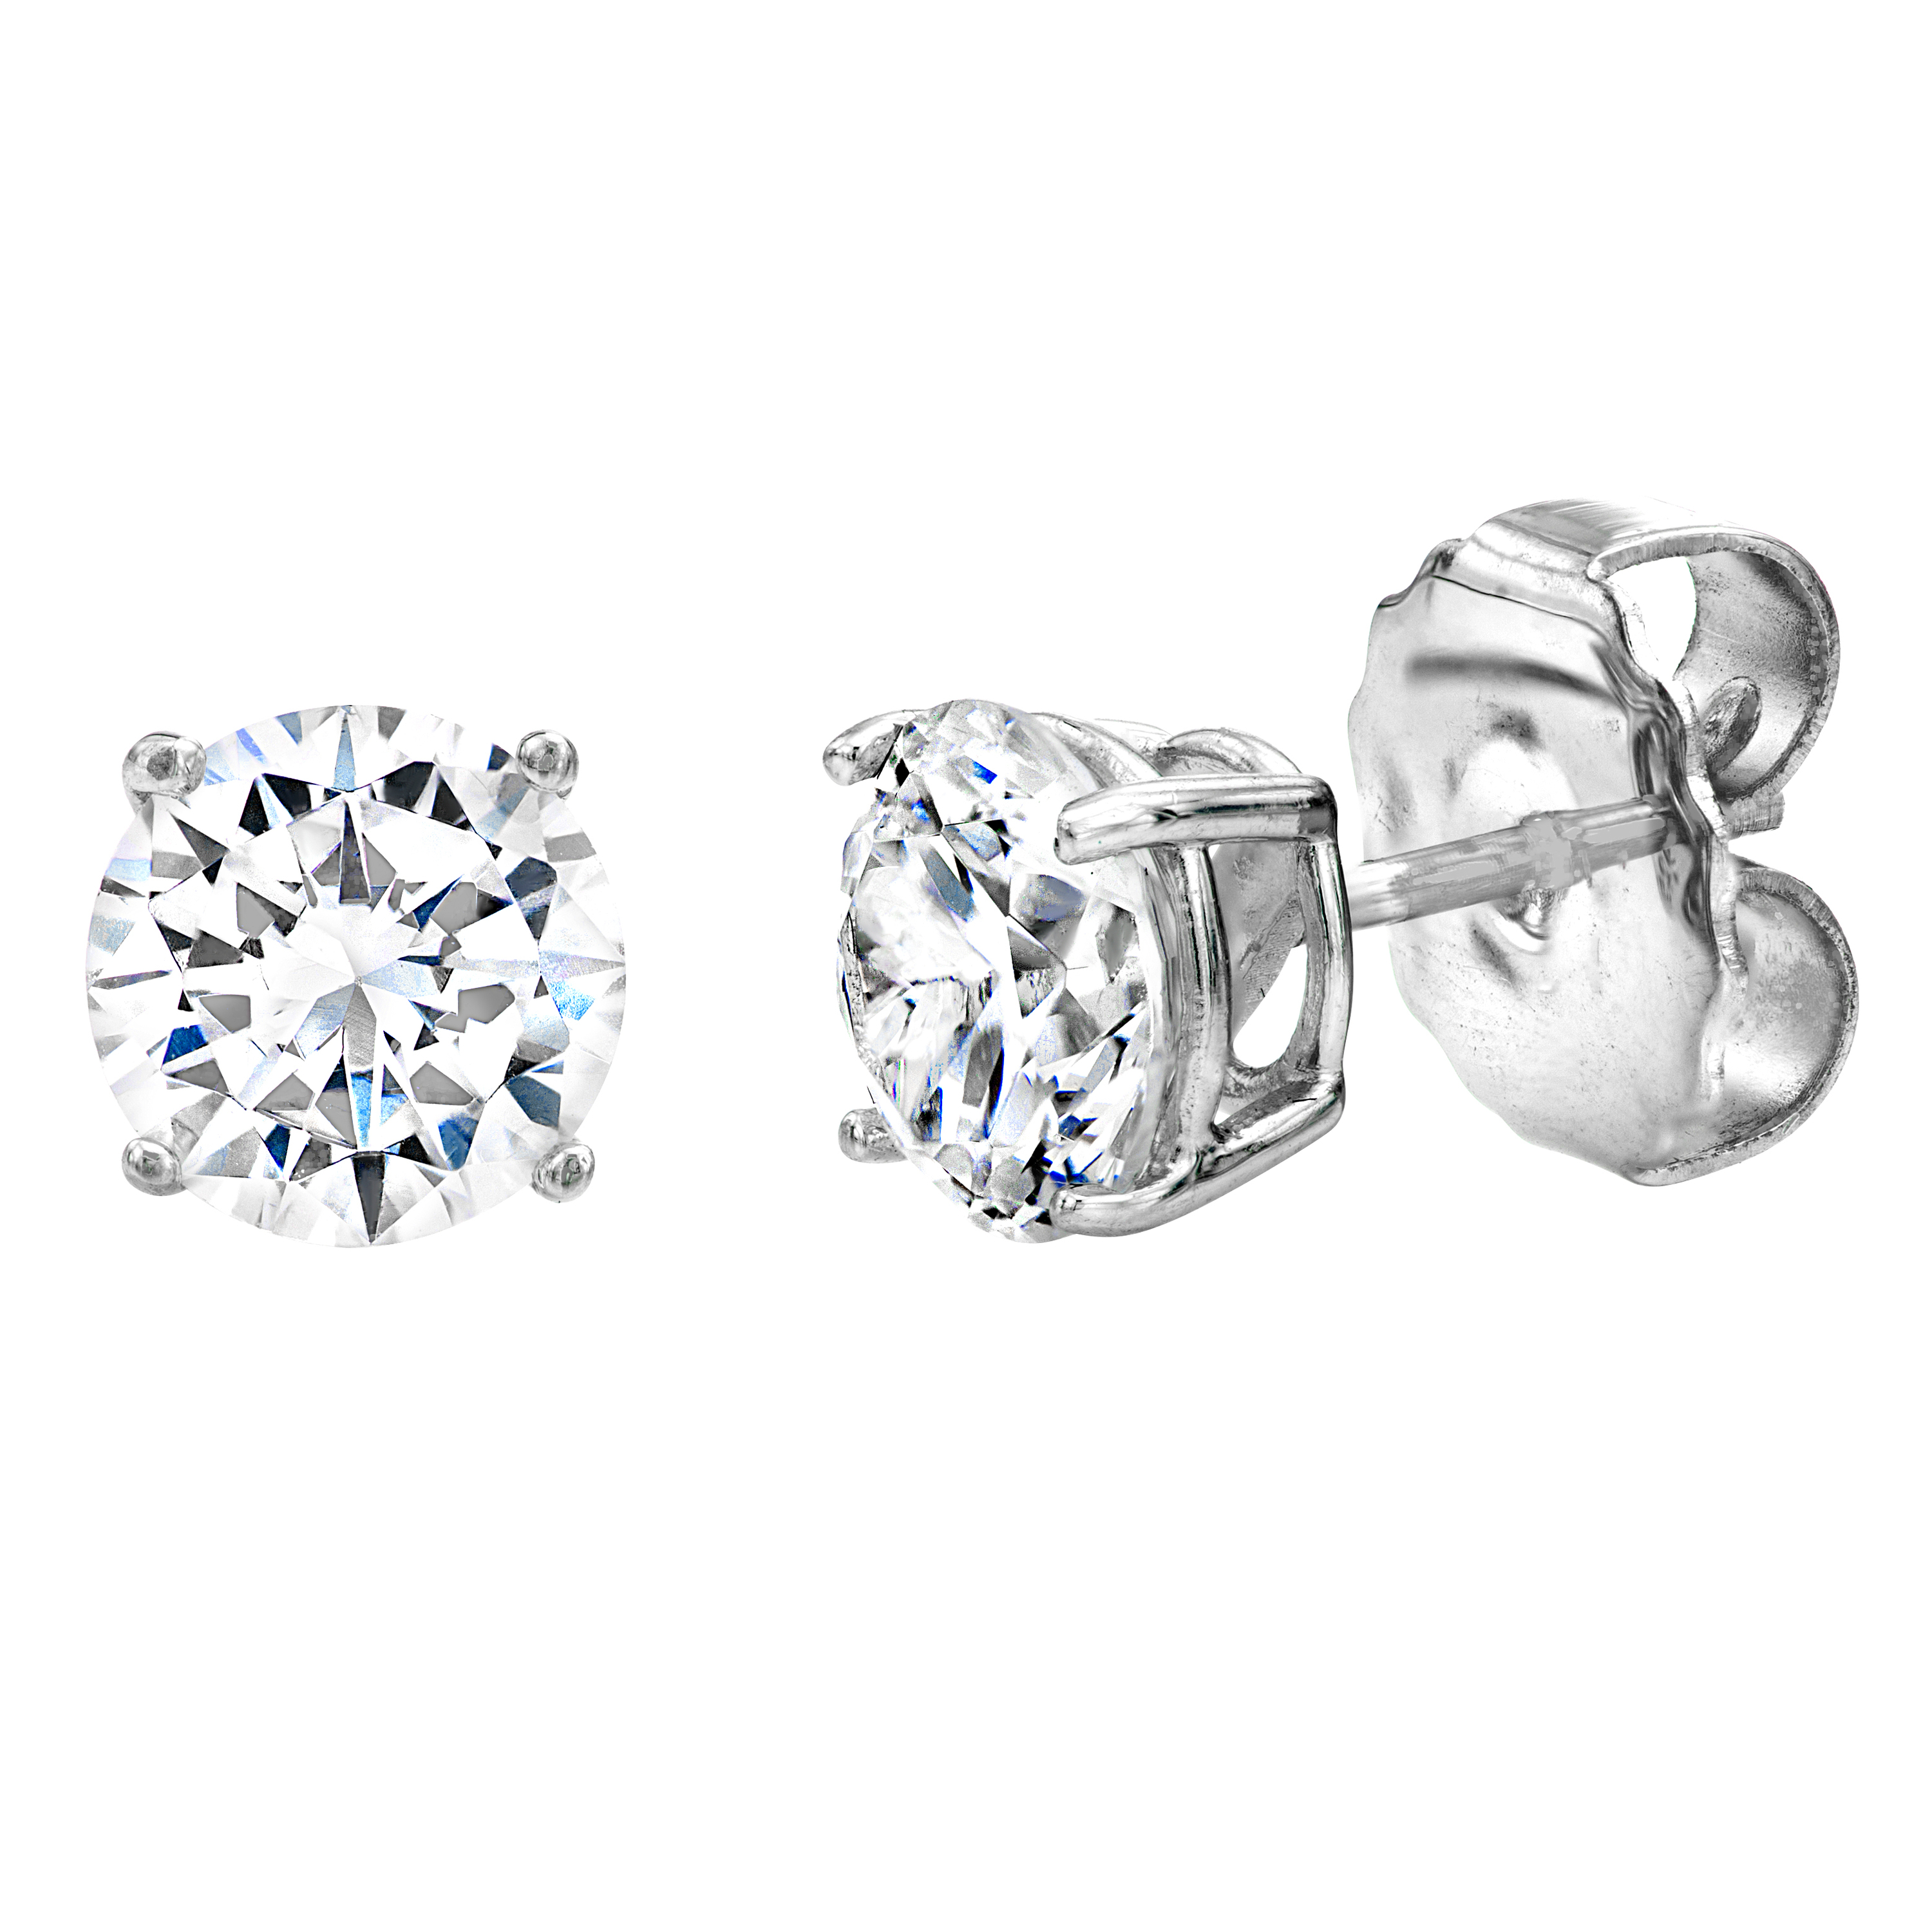 Sterling silver 4 prong 1 carat solitaire studs v20039 a 210000000321 k18vbo